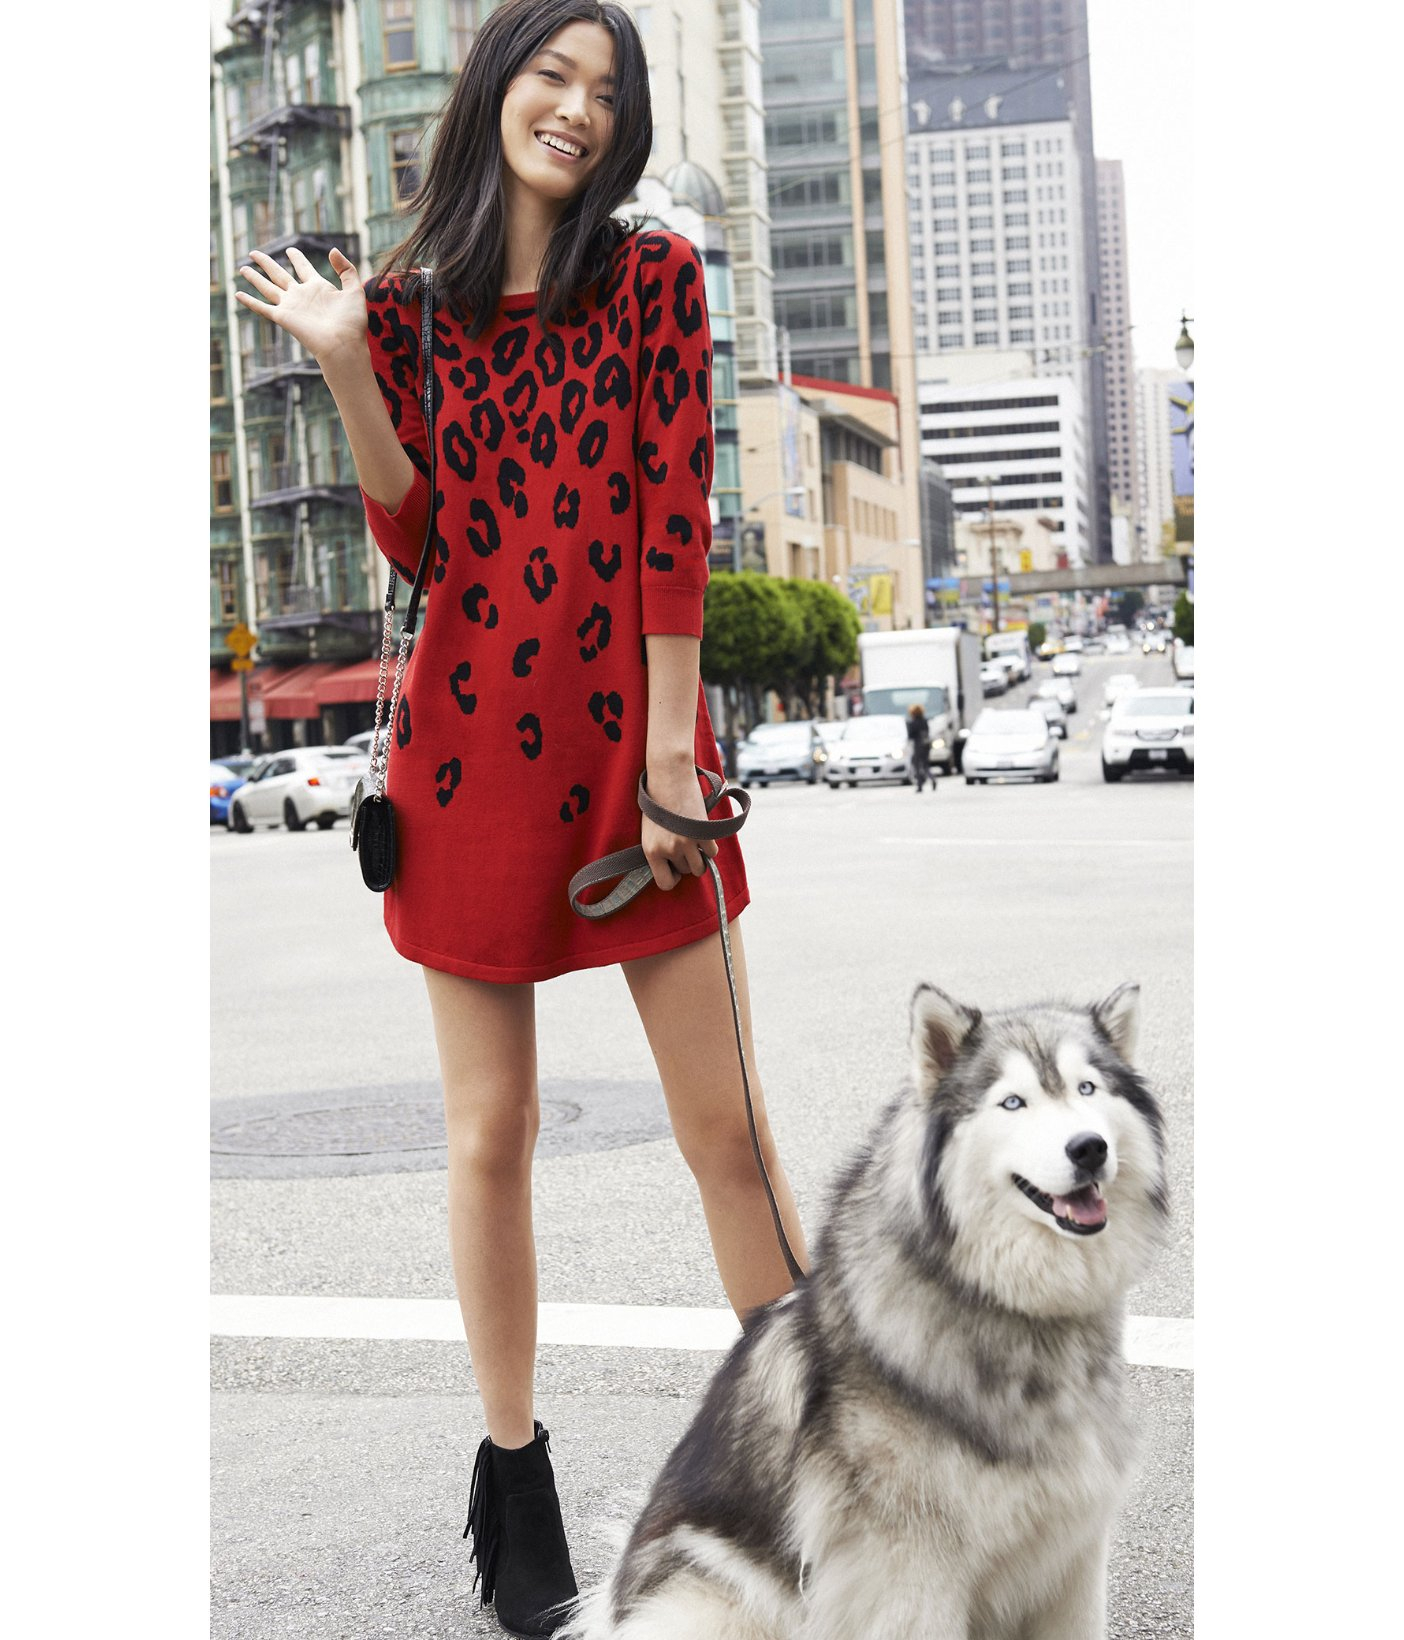 20dd20a0c5 Lyst - Express Red Leopard Print Sweater Dress in Red